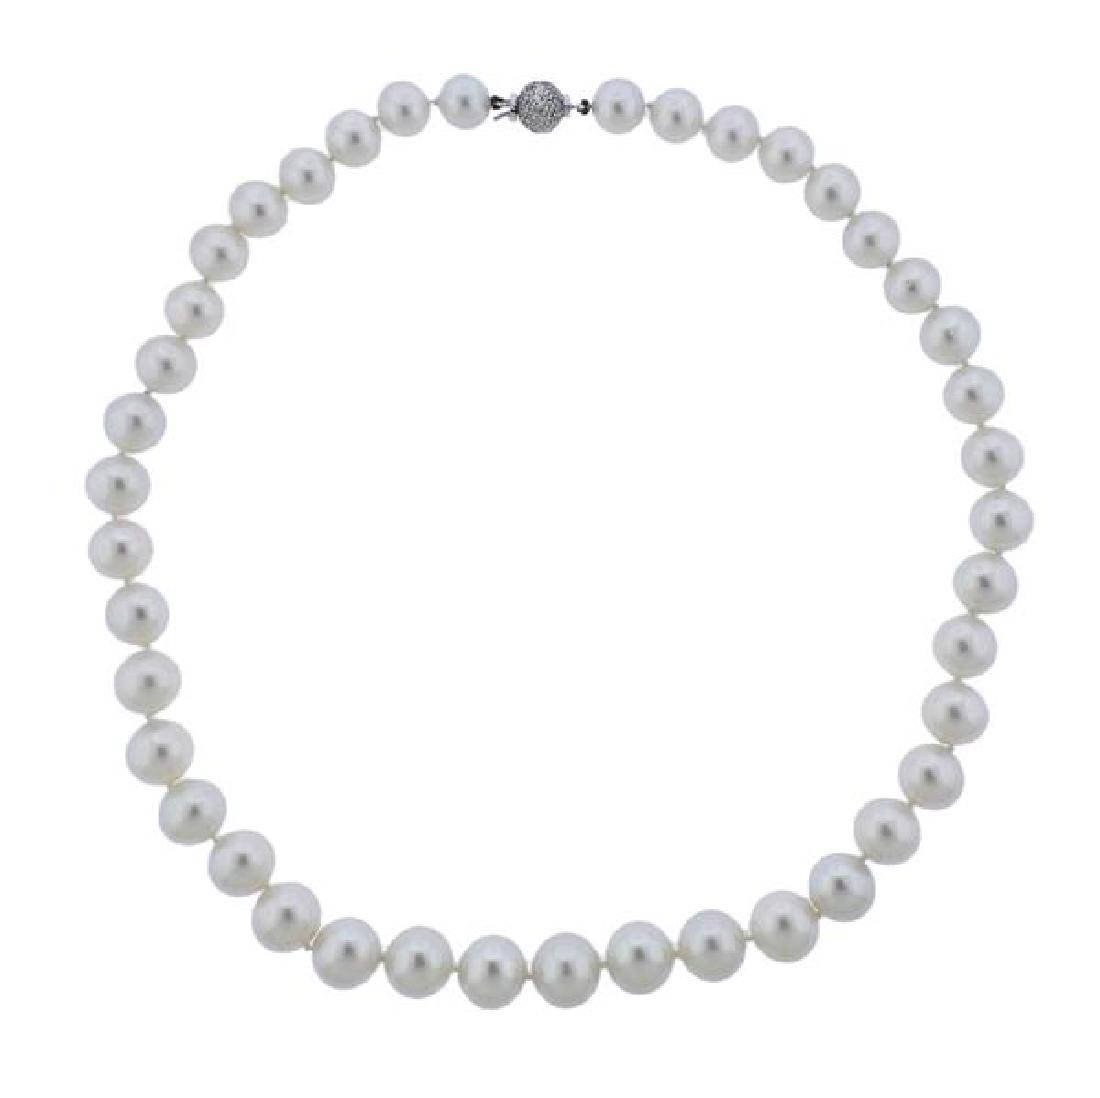 18k Gold Diamond Pearl Necklace